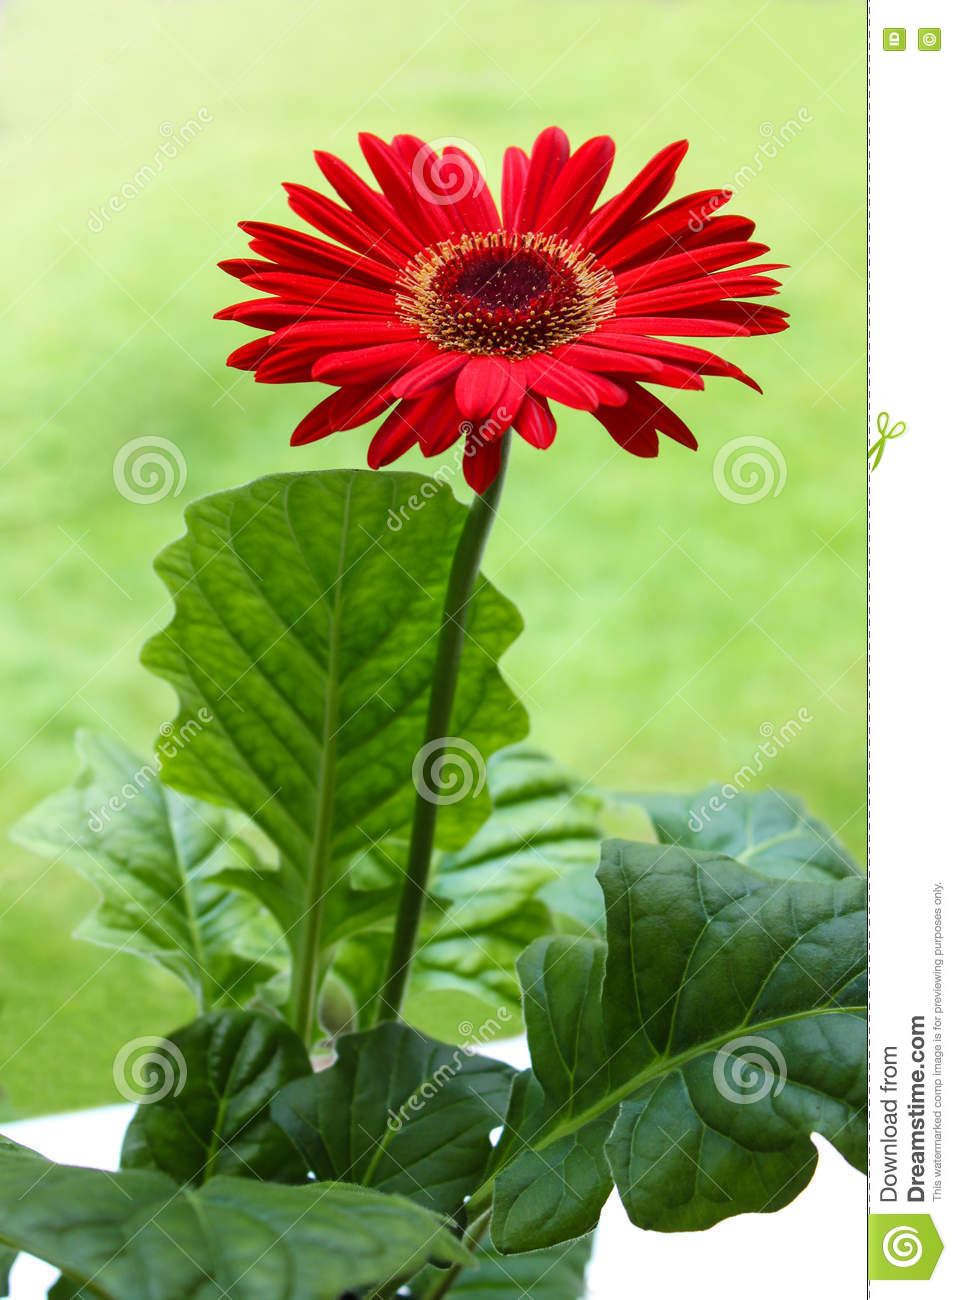 Red gerbera daisy flower stock image image of plant 72008185 download comp izmirmasajfo